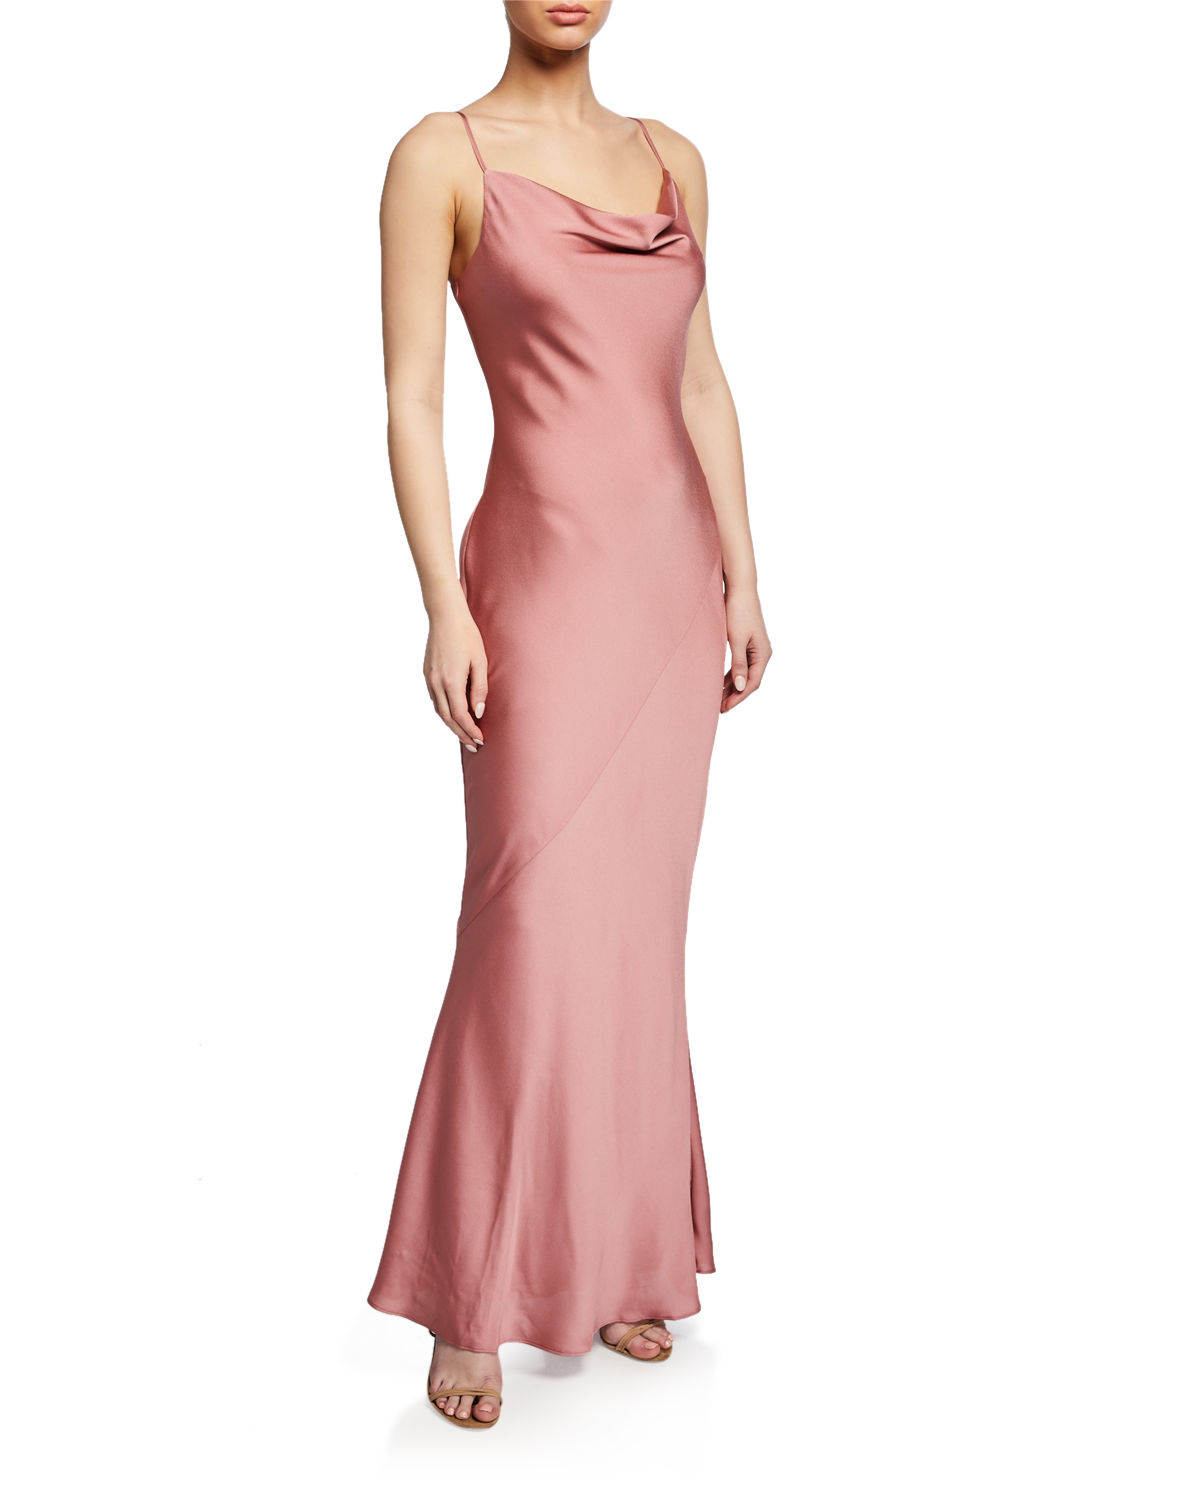 Cowl Neck Satin Wedding Dresses: Shona Joy Cowl-Neck Spaghetti-Strap Bias-Cut Satin Slip